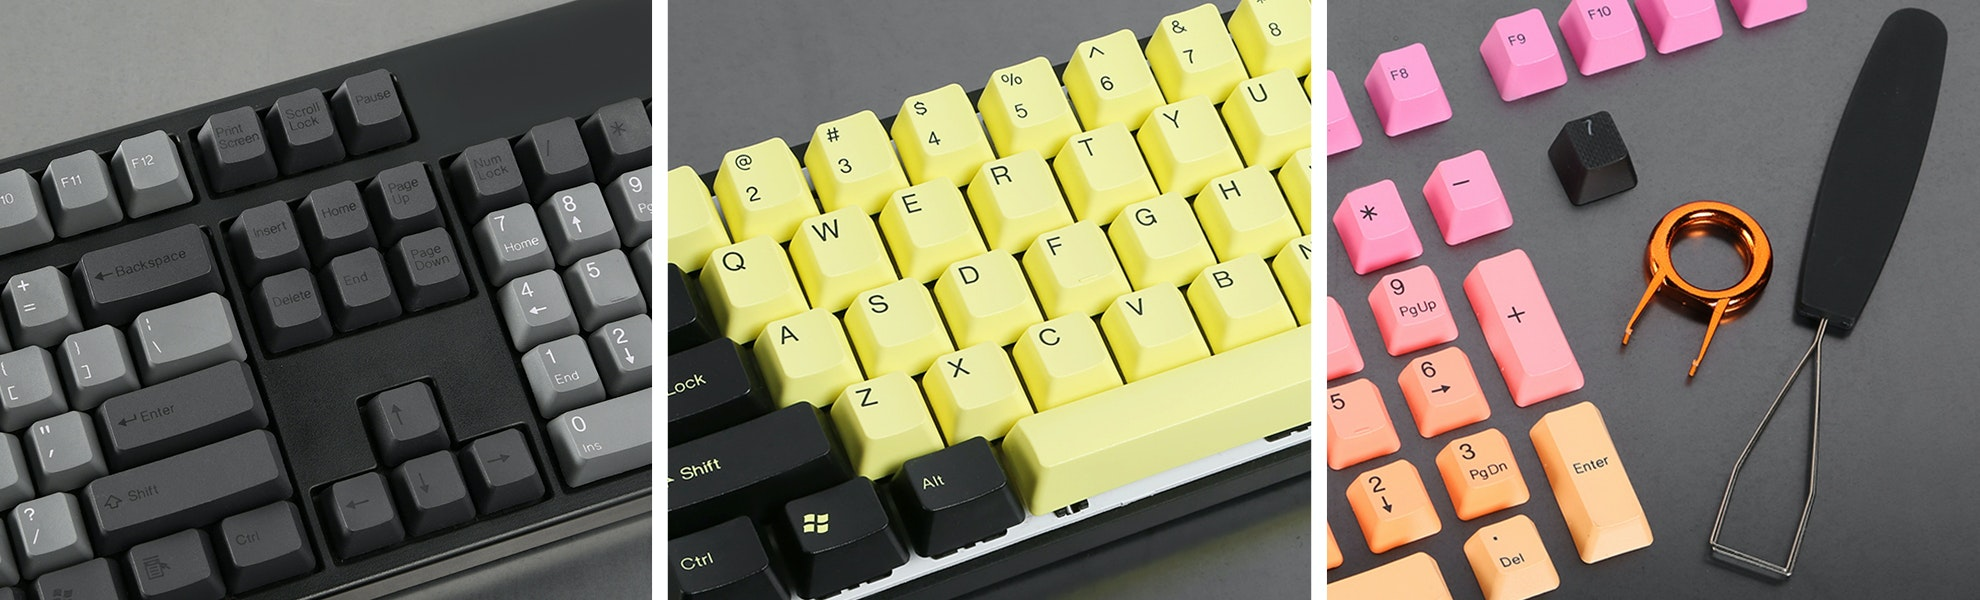 PBT Double-Shot Keycap Set - 5 Color Options